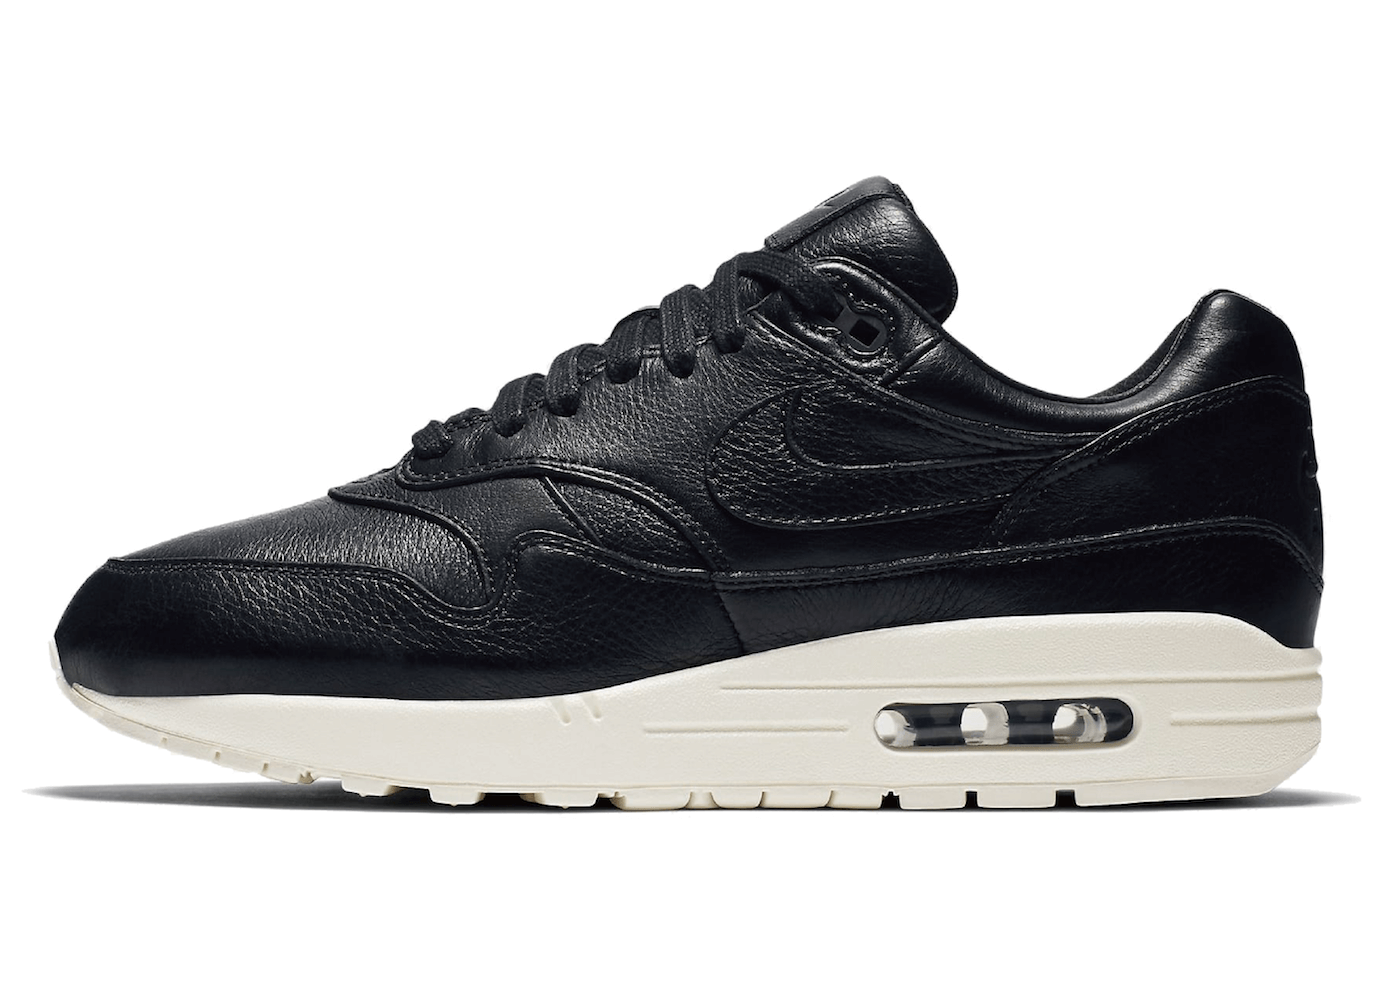 Air Max 1 Pinnacle Black Sailの写真